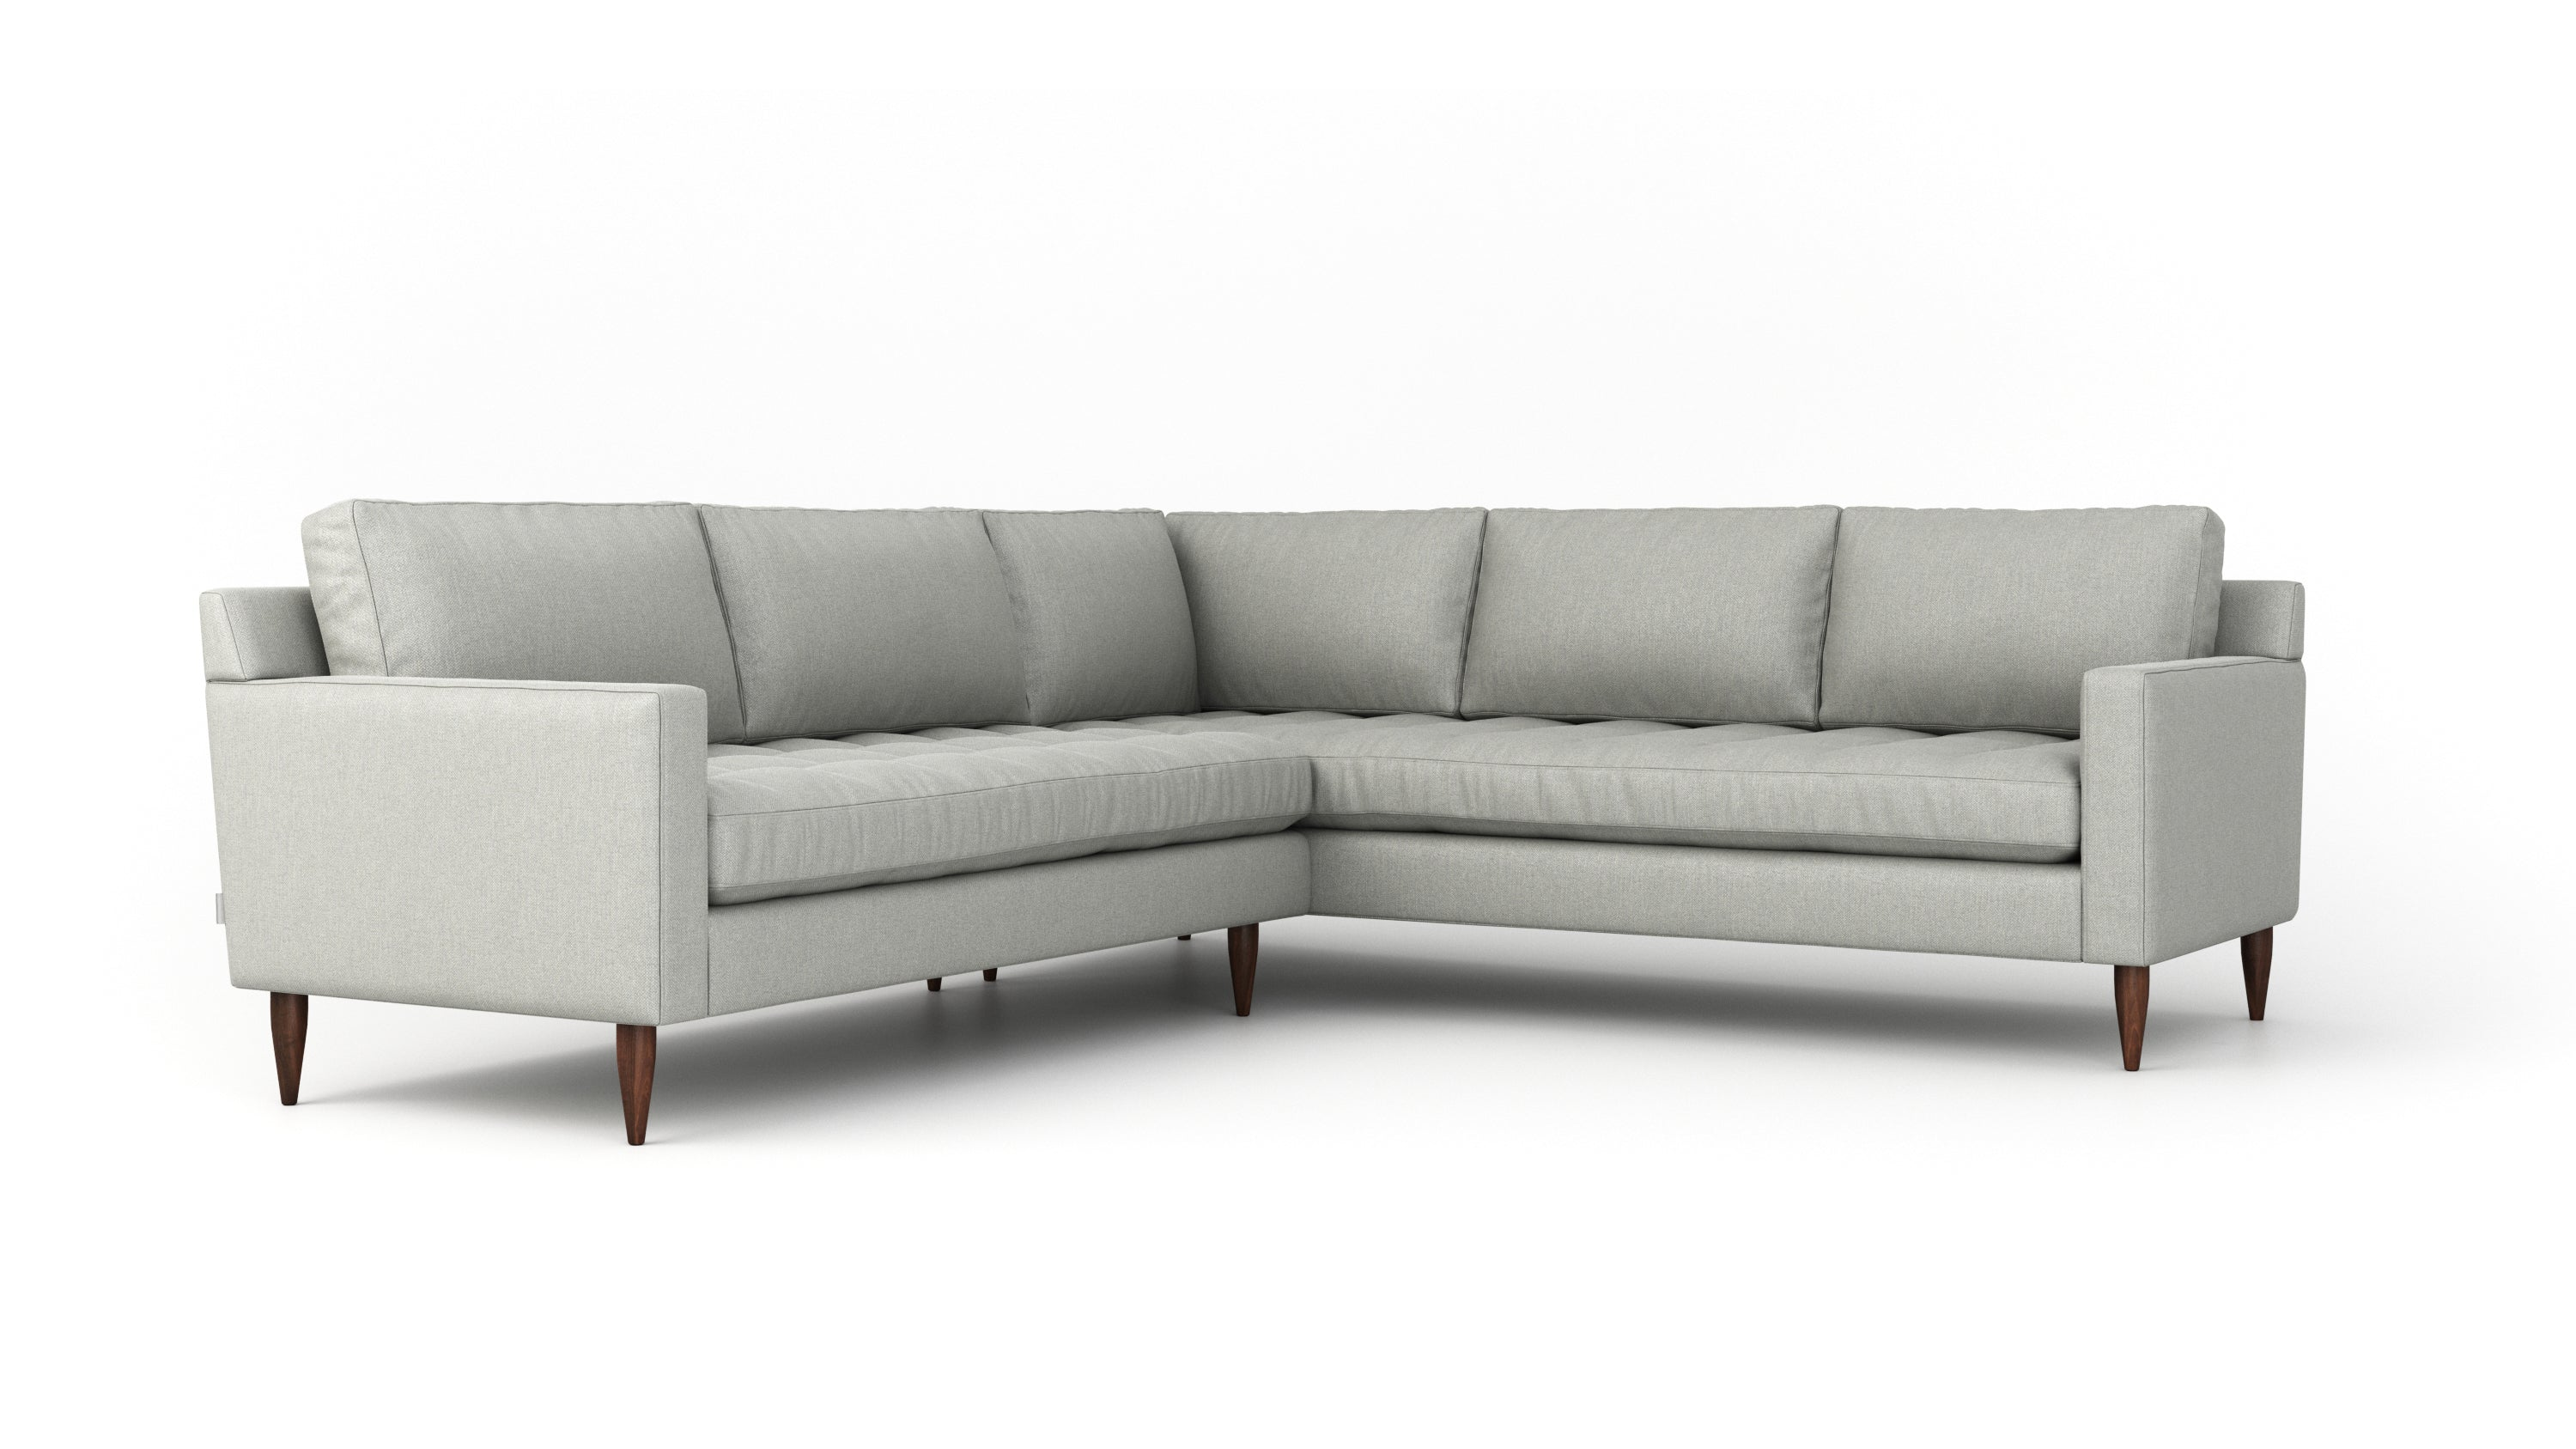 MCM Sectional